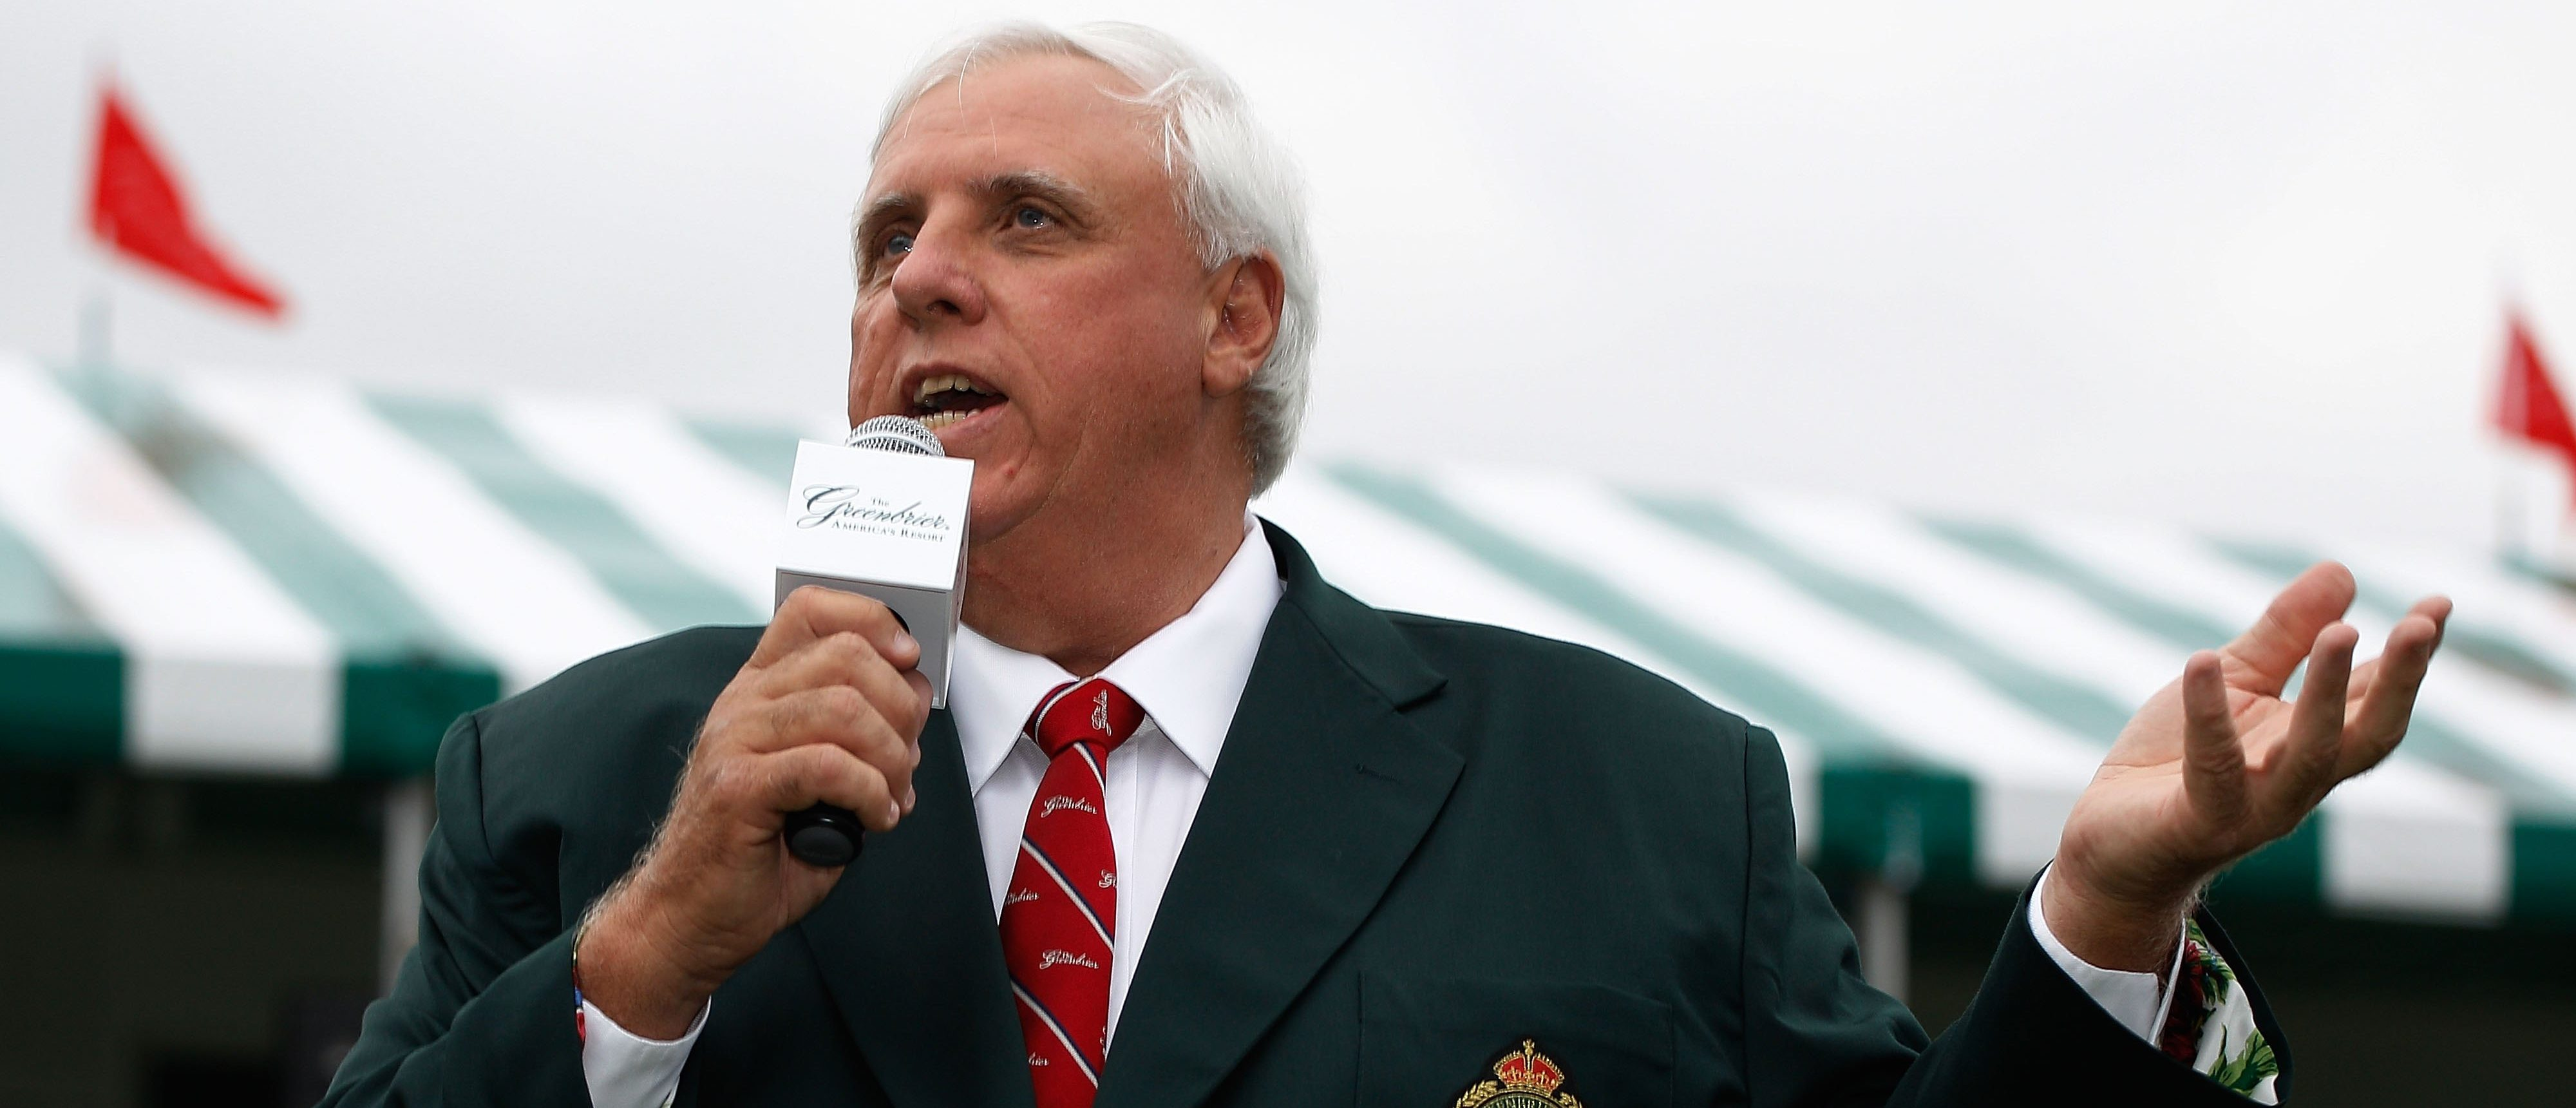 WHITE SULPHUR SPRINGS, WV - AUGUST 01: Jim Justice, owner of the Greenbrier Resort, speaks to the gallery after Stuart Appleby's victory at the Greenbrier Classic on August 1, 2010 in White Sulphur Springs, West Virginia. (Photo by Scott Halleran/Getty Images)